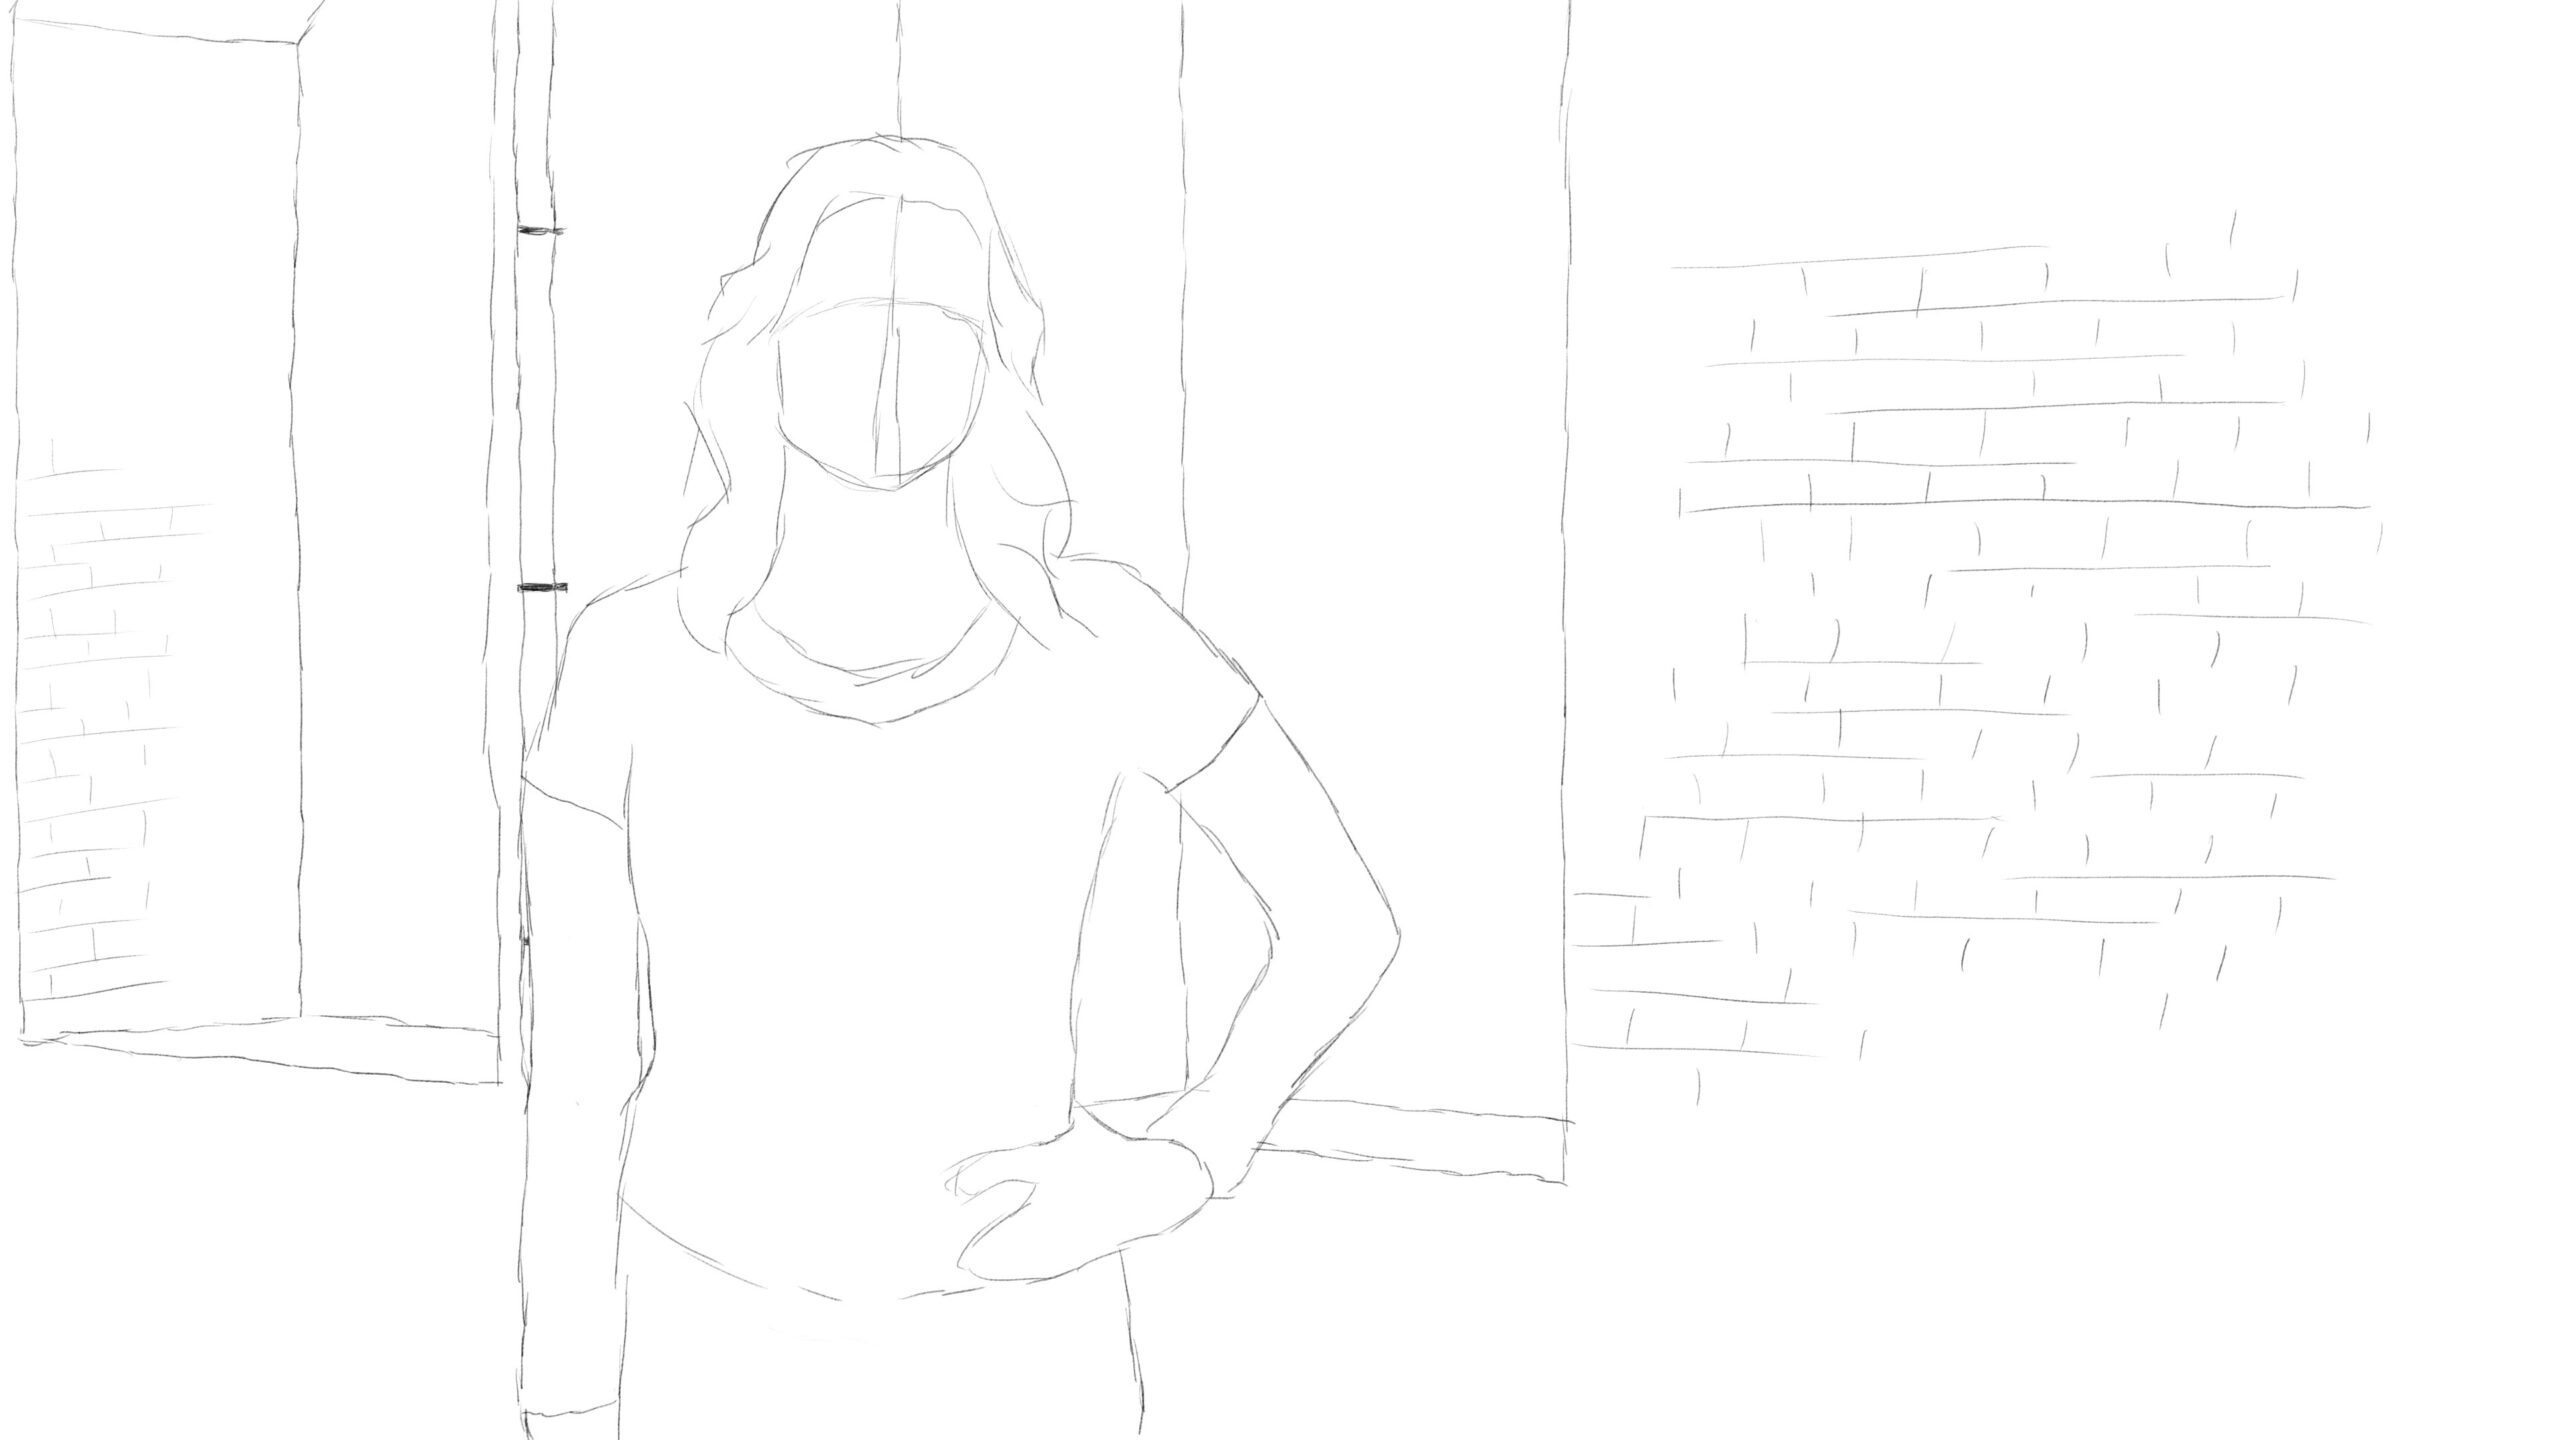 Pitney Bowes-RumbleOn concept art - offset-view drawing of a garage window with a person standing in front of it